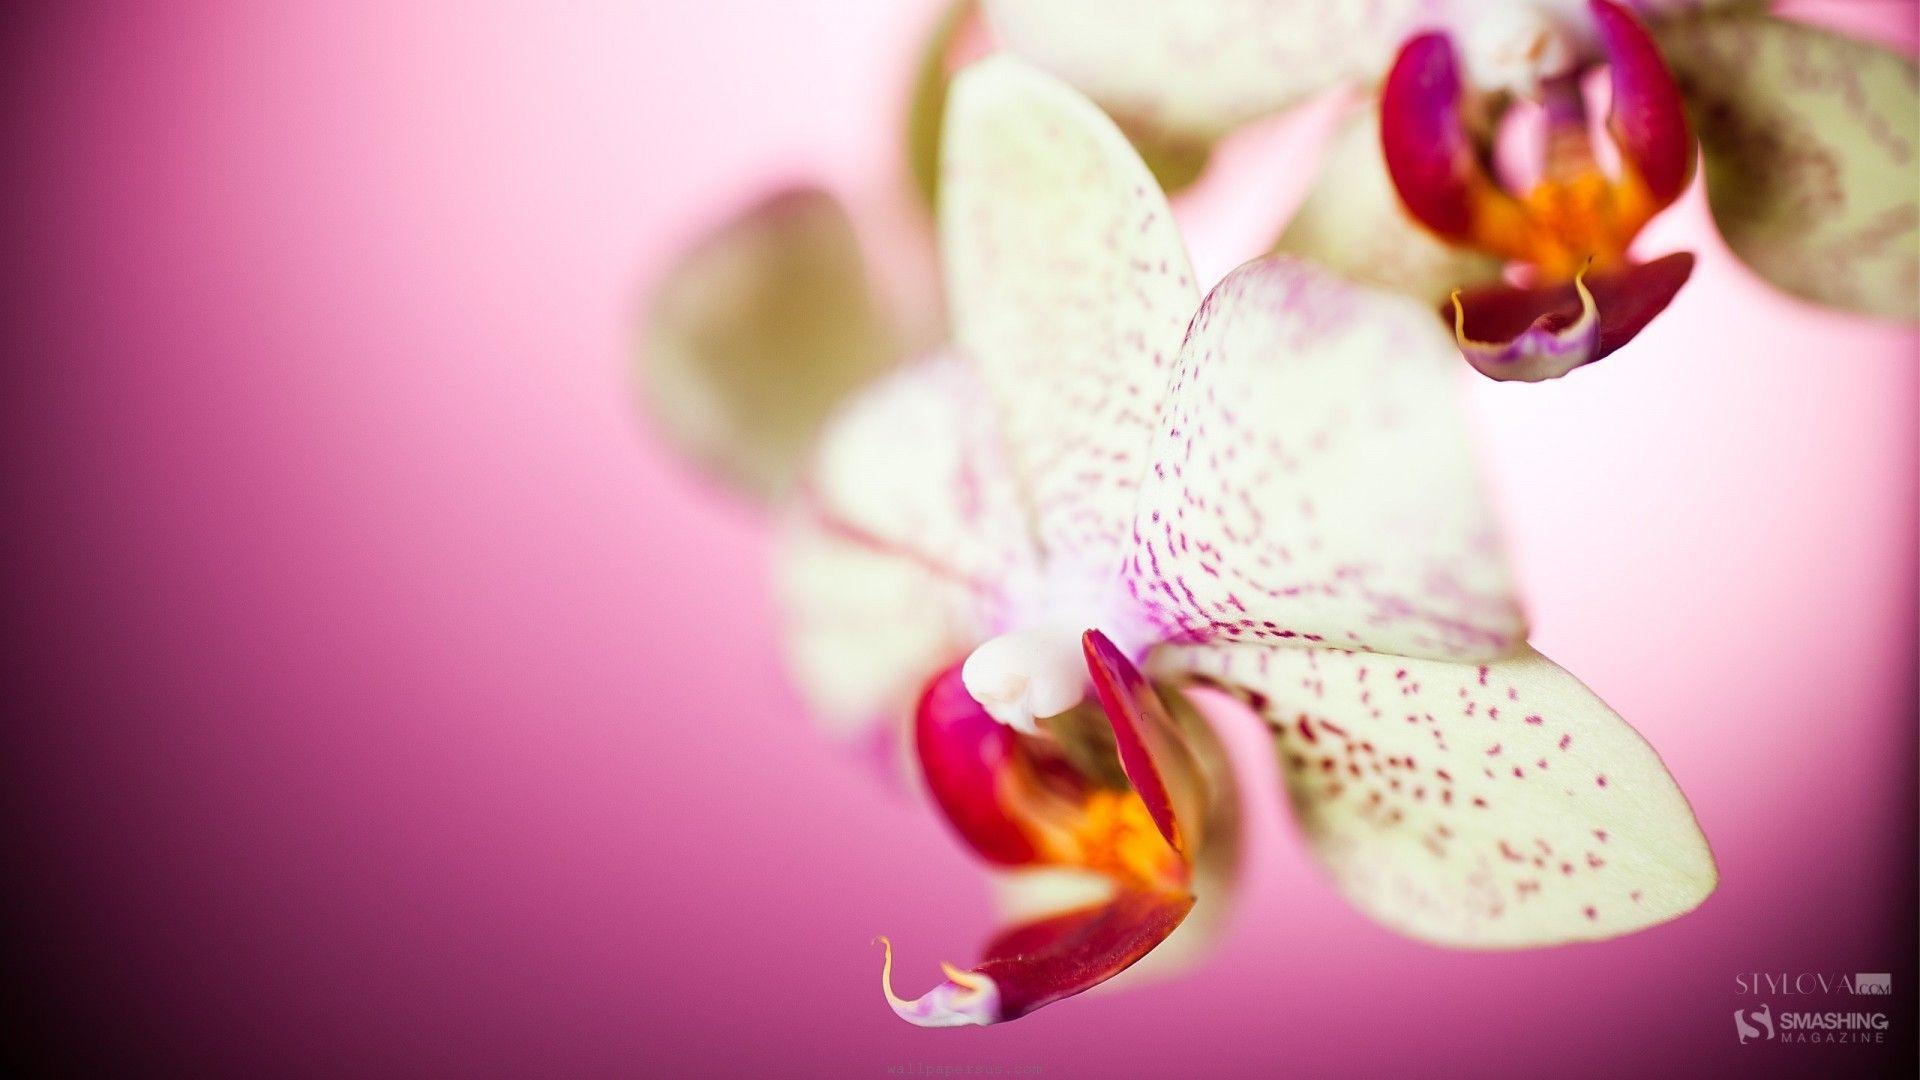 Habrumalas orchids in water wallpaper images - White Orchid Wallpapers Wallpaper Cave